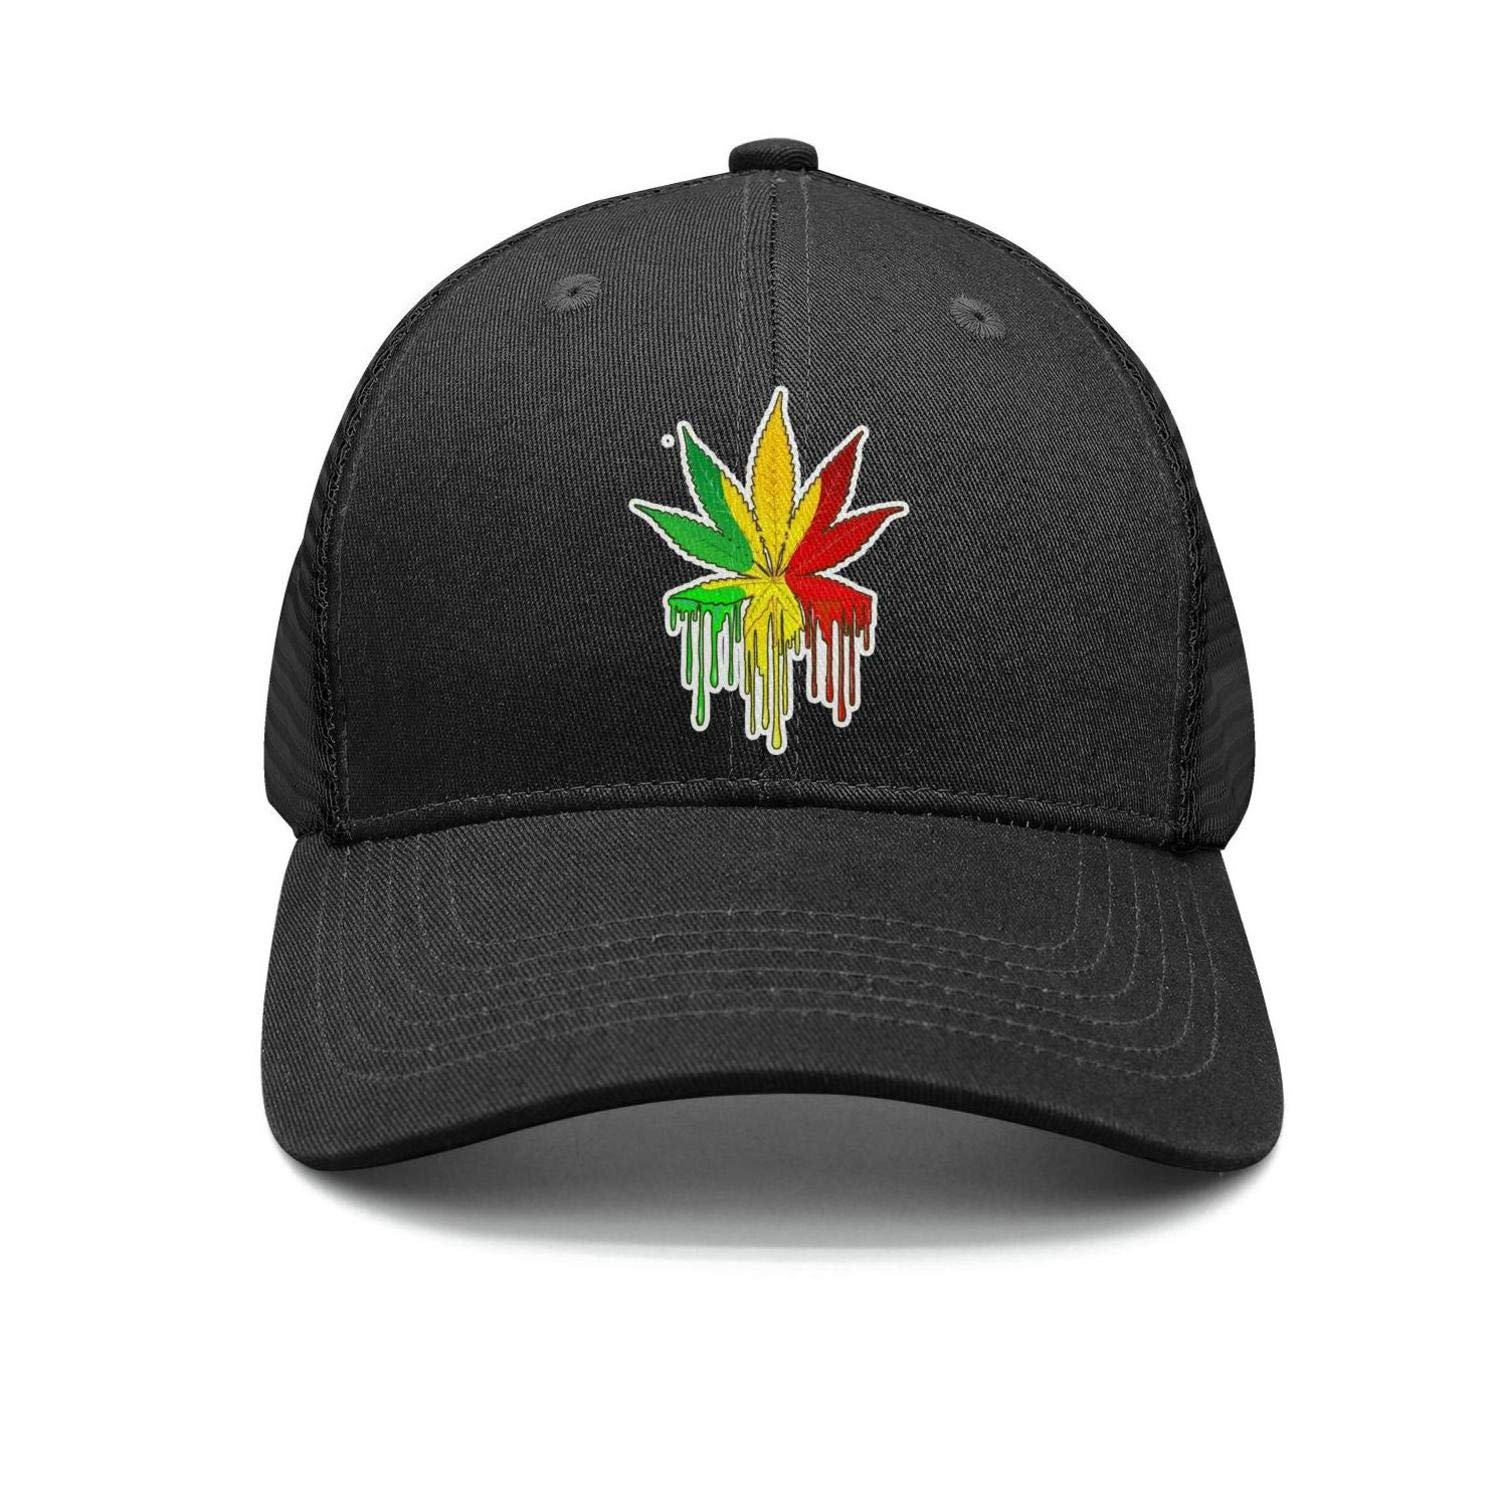 YHNBHI Three Color Cannabis Patch Unisex Flat-Along Adjustable Cricket Cap 3D Printing Strapback Hat